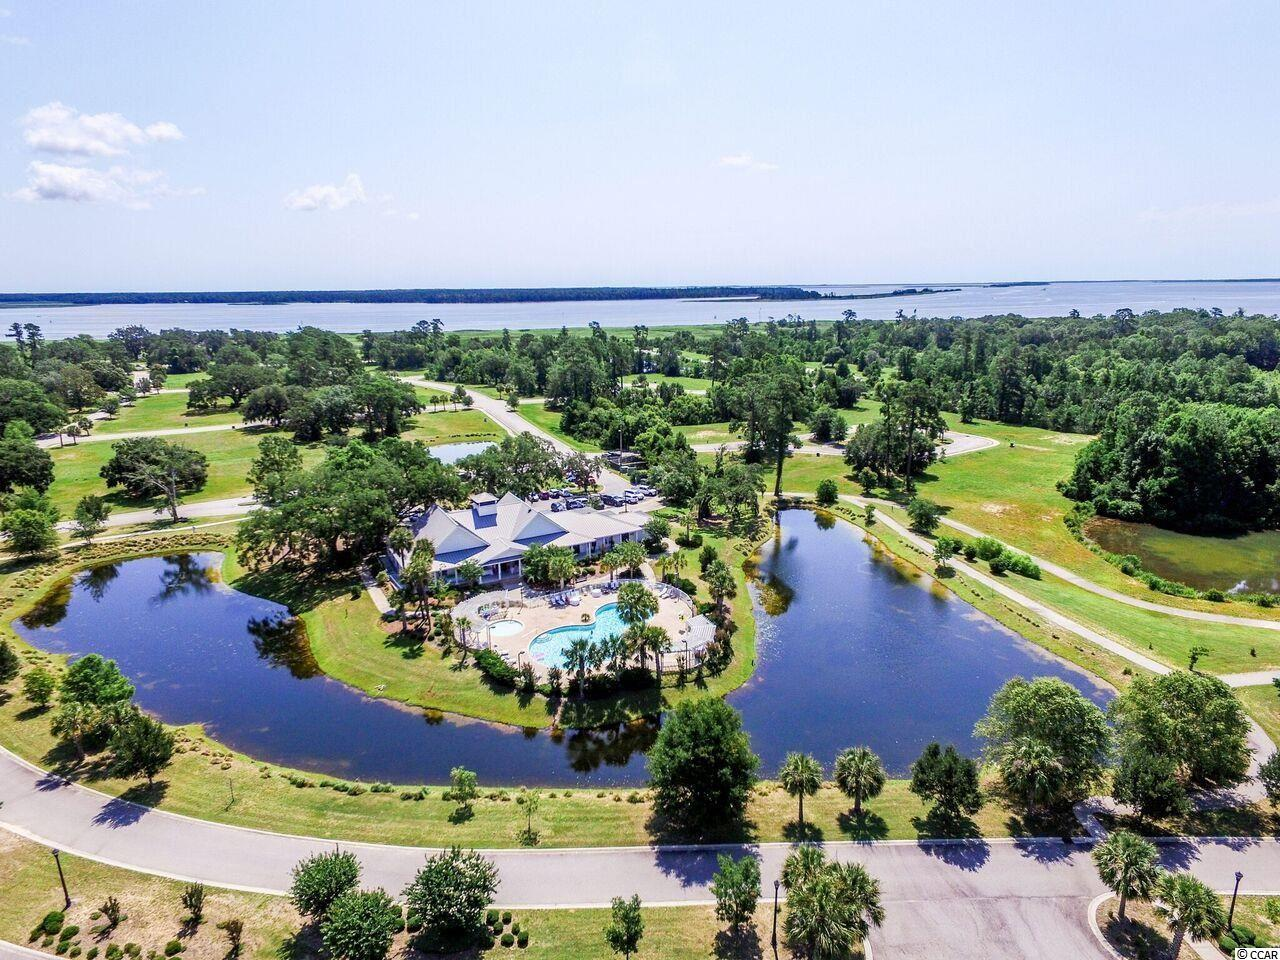 South Island Plantation...A gated community situated along Winyah Bay and the Intracoastal Waterway and located near Historic Georgetown, SC. The community amenities include a pool, kiddie pool and hot tub. There is also a 5000 sq ft club house with an equipped fitness center, a bar and a full kitchen. Walking trails wind throughout the community with gazebos for periodic resting. A fishing/crabbin' gazebo is now complete and offers incredible views of the bay. A secured RV/ Boat storage area is available for property owners. Huge oak trees and beautiful lakes make this one of the premier communities in the area. Build your dream home today....